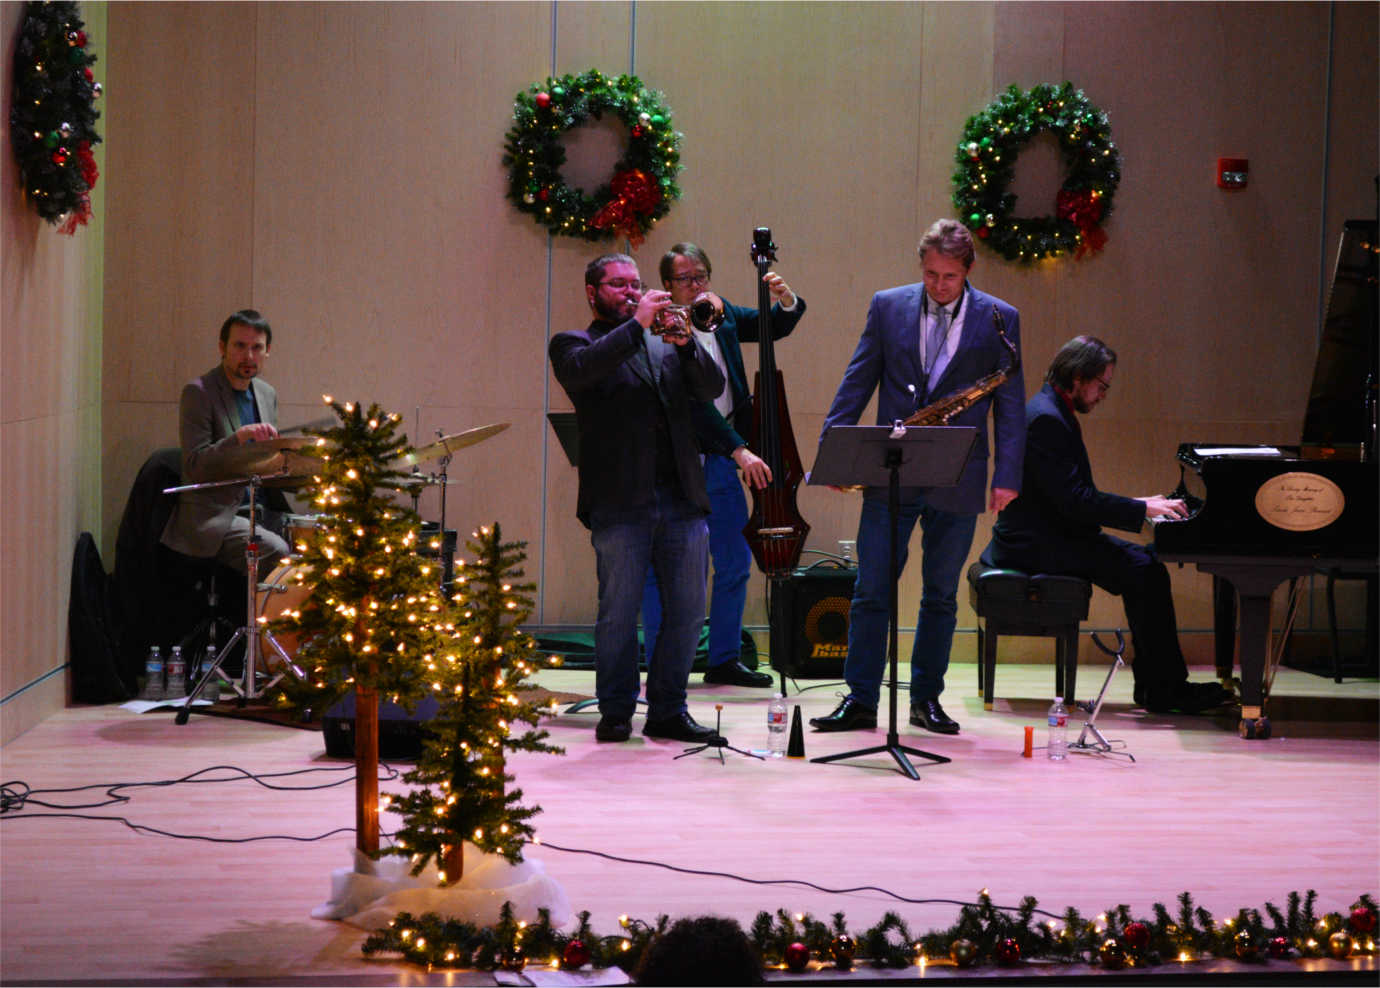 Holiday concerts at the Longmont Museum rank among the community's favorite events. Image courtesy of the Longmont Museum.